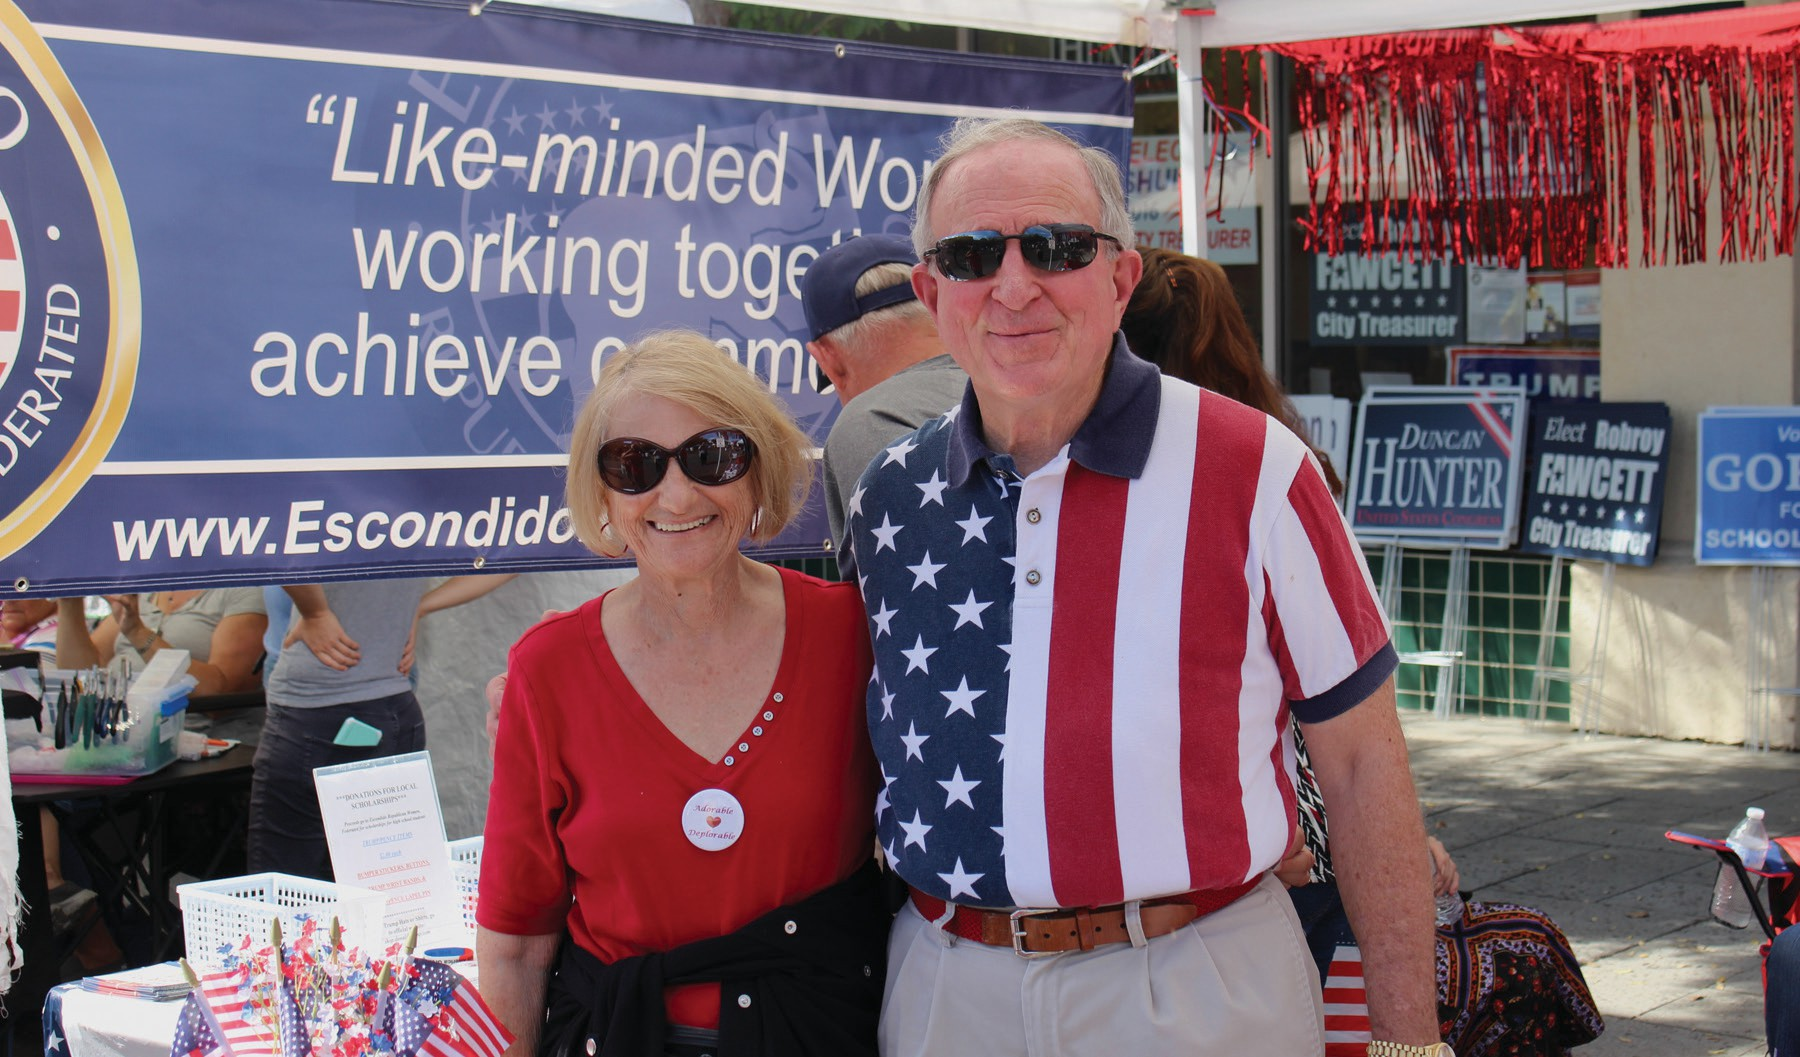 Dr. Doug Moir (see front page story) and his wife, whose name we didn't get, at the Republican booth.